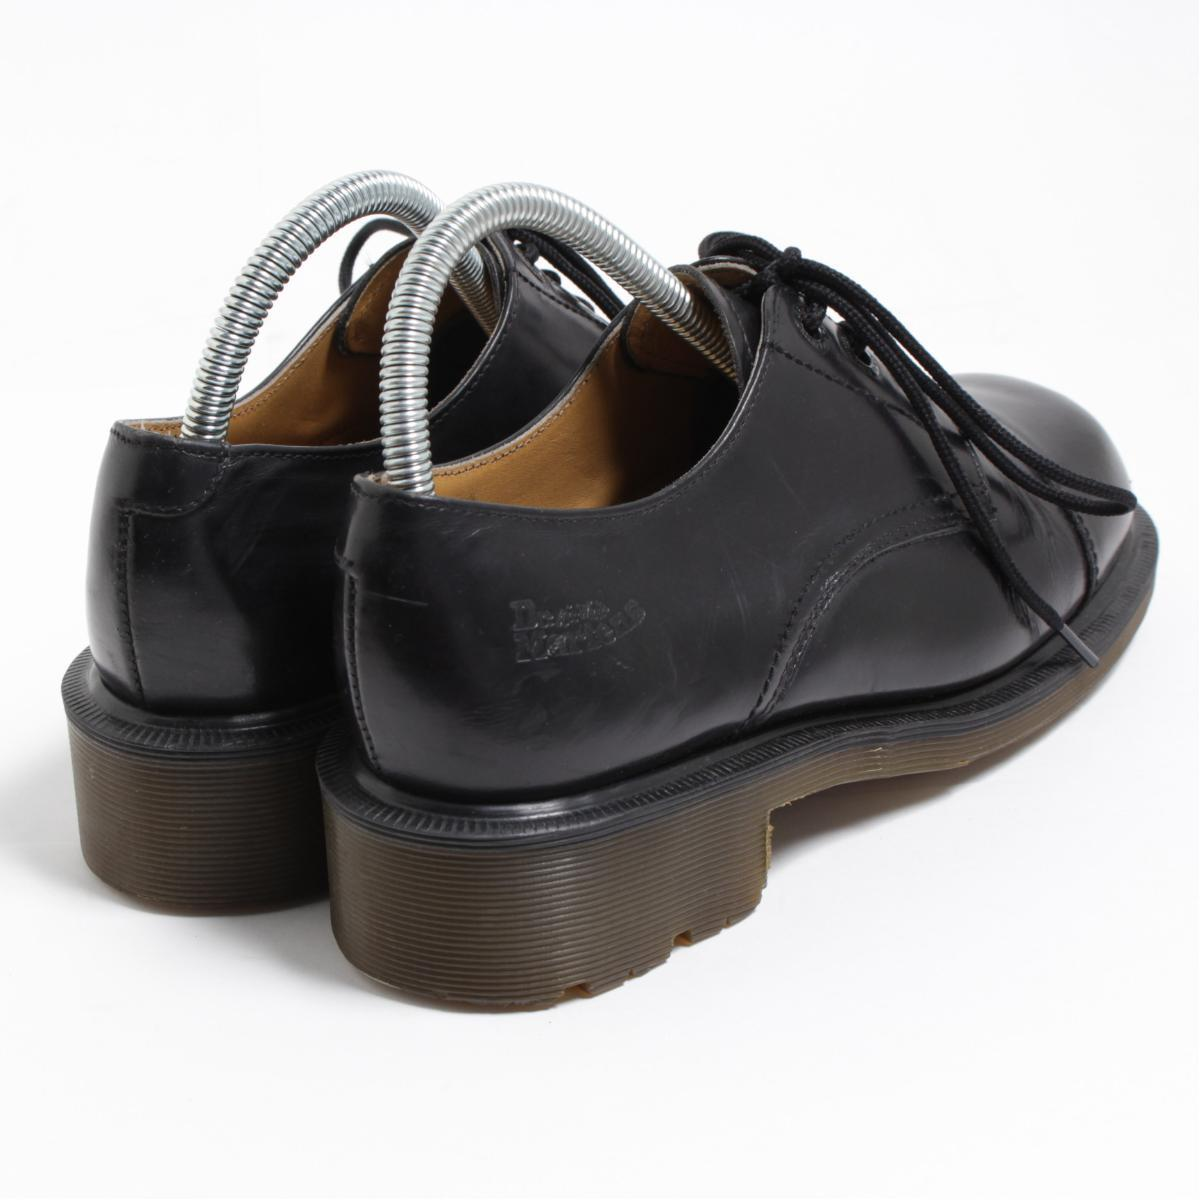 UK6 Lady's 24.5cm /bon0505 made in the doctor Martin Dr.Martens 3 hall shoes U.K.